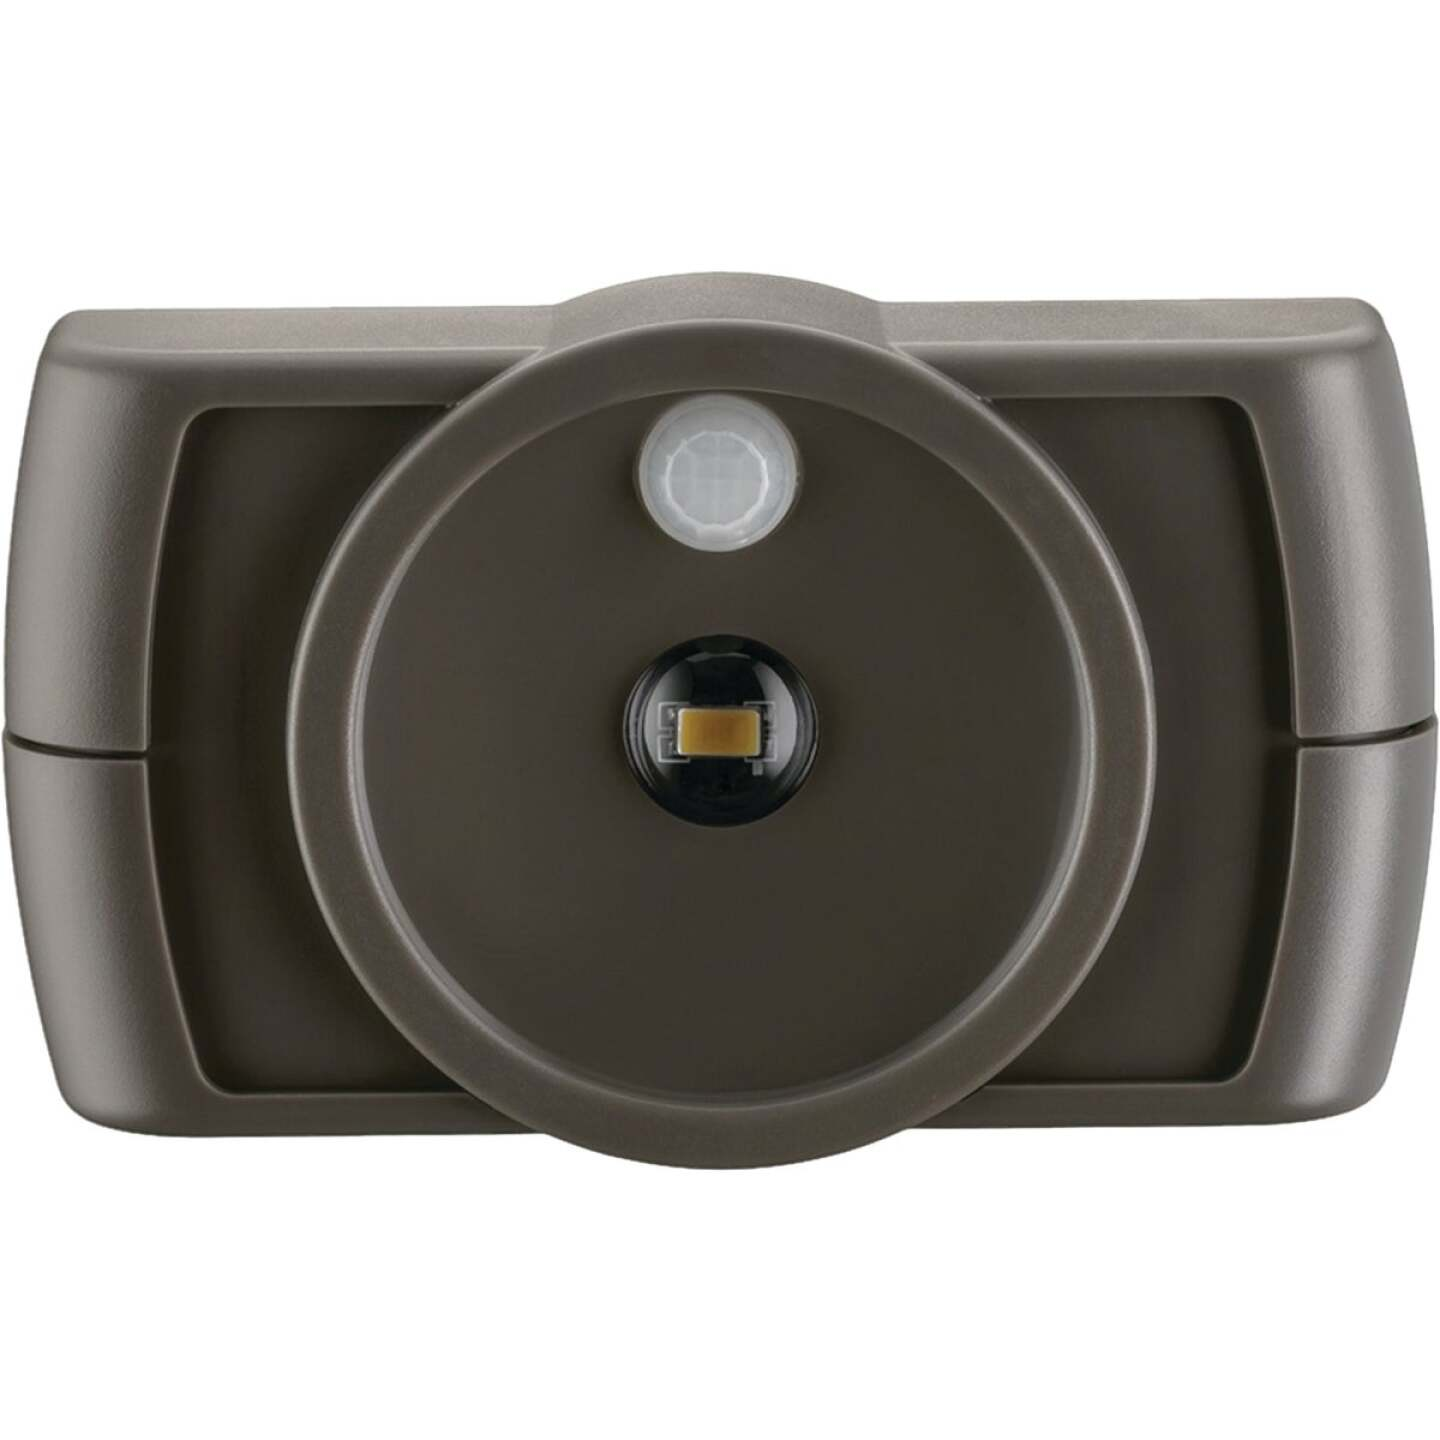 Mr. Beams Brown LED Battery Operated Light Image 1